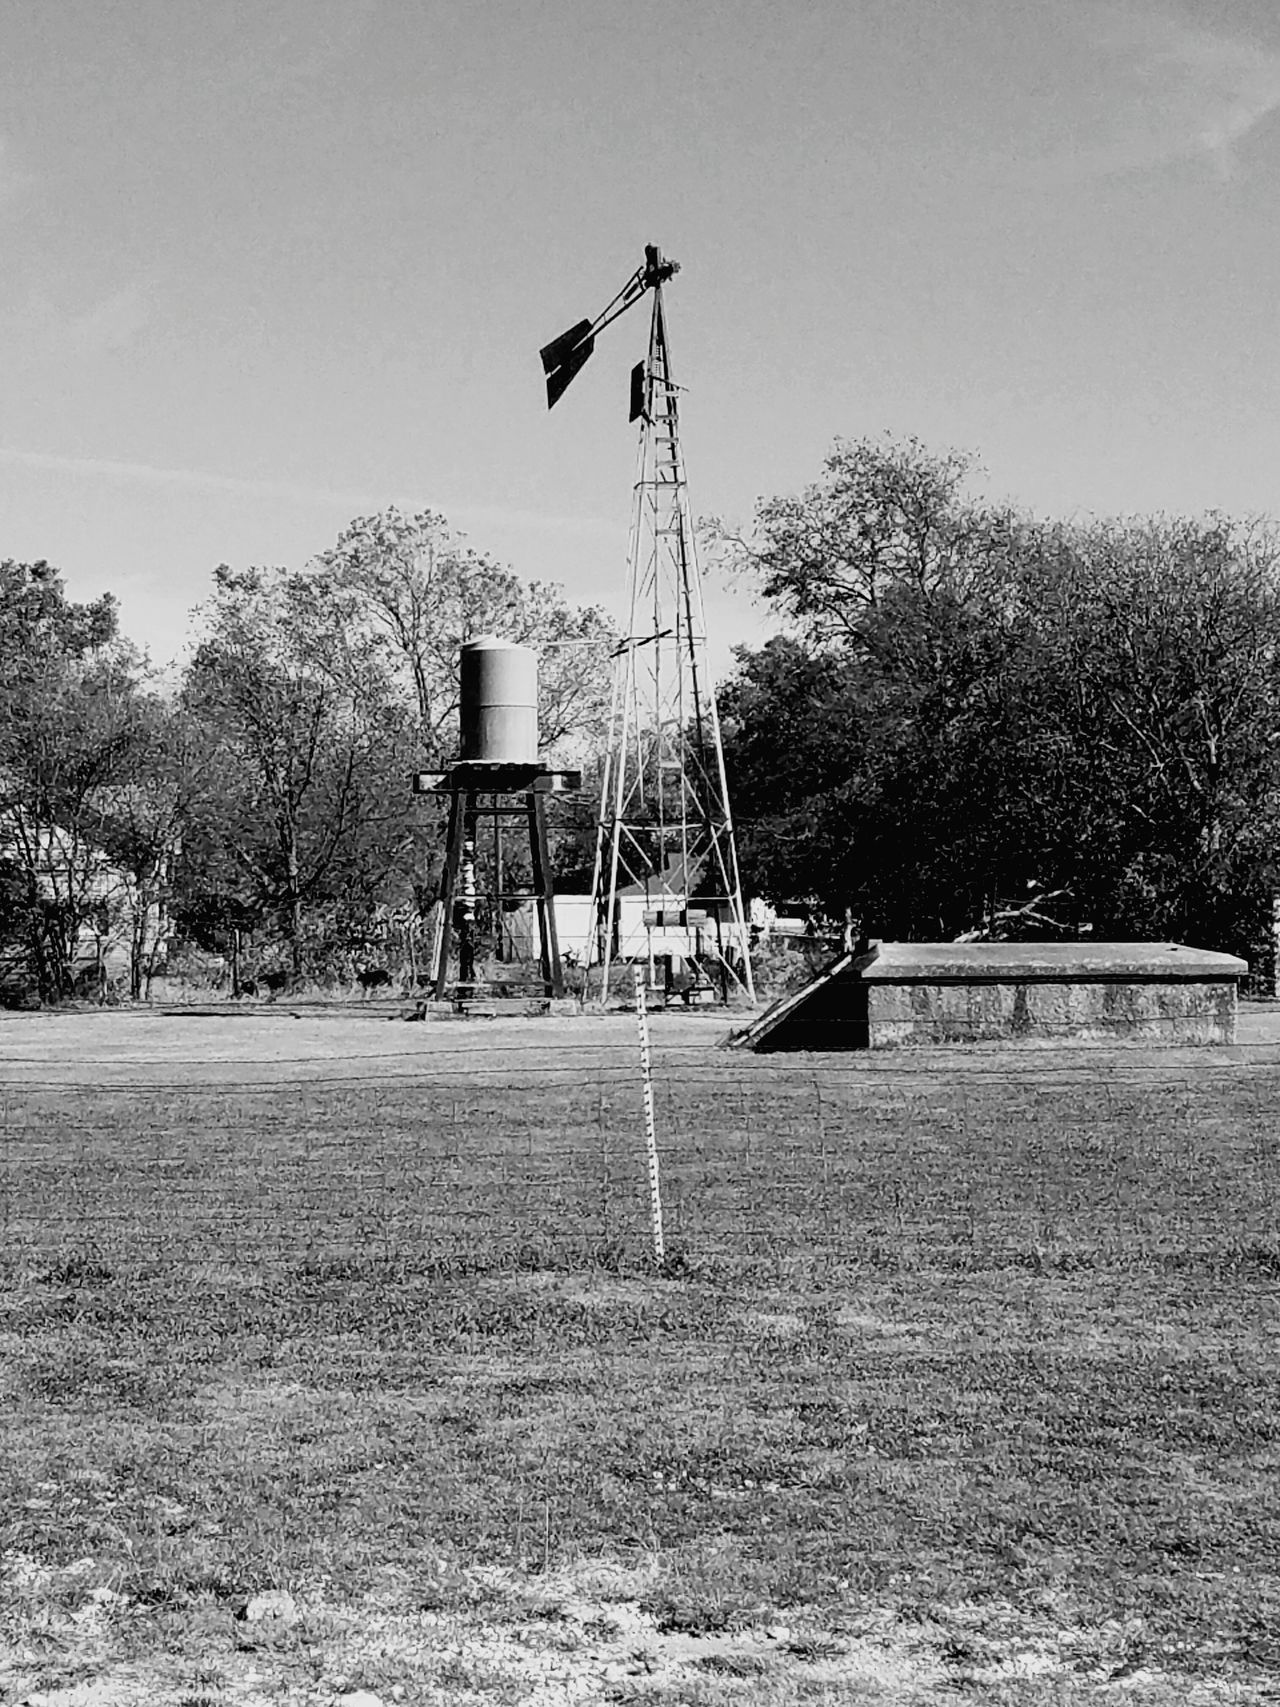 Sky No People Outdoors Nature Day Antenna - Aerial Black And White Photography Farm Watertank Tree Landscape_photography Cloud - Sky Structure And Nature Ruralphotography Ruralscape